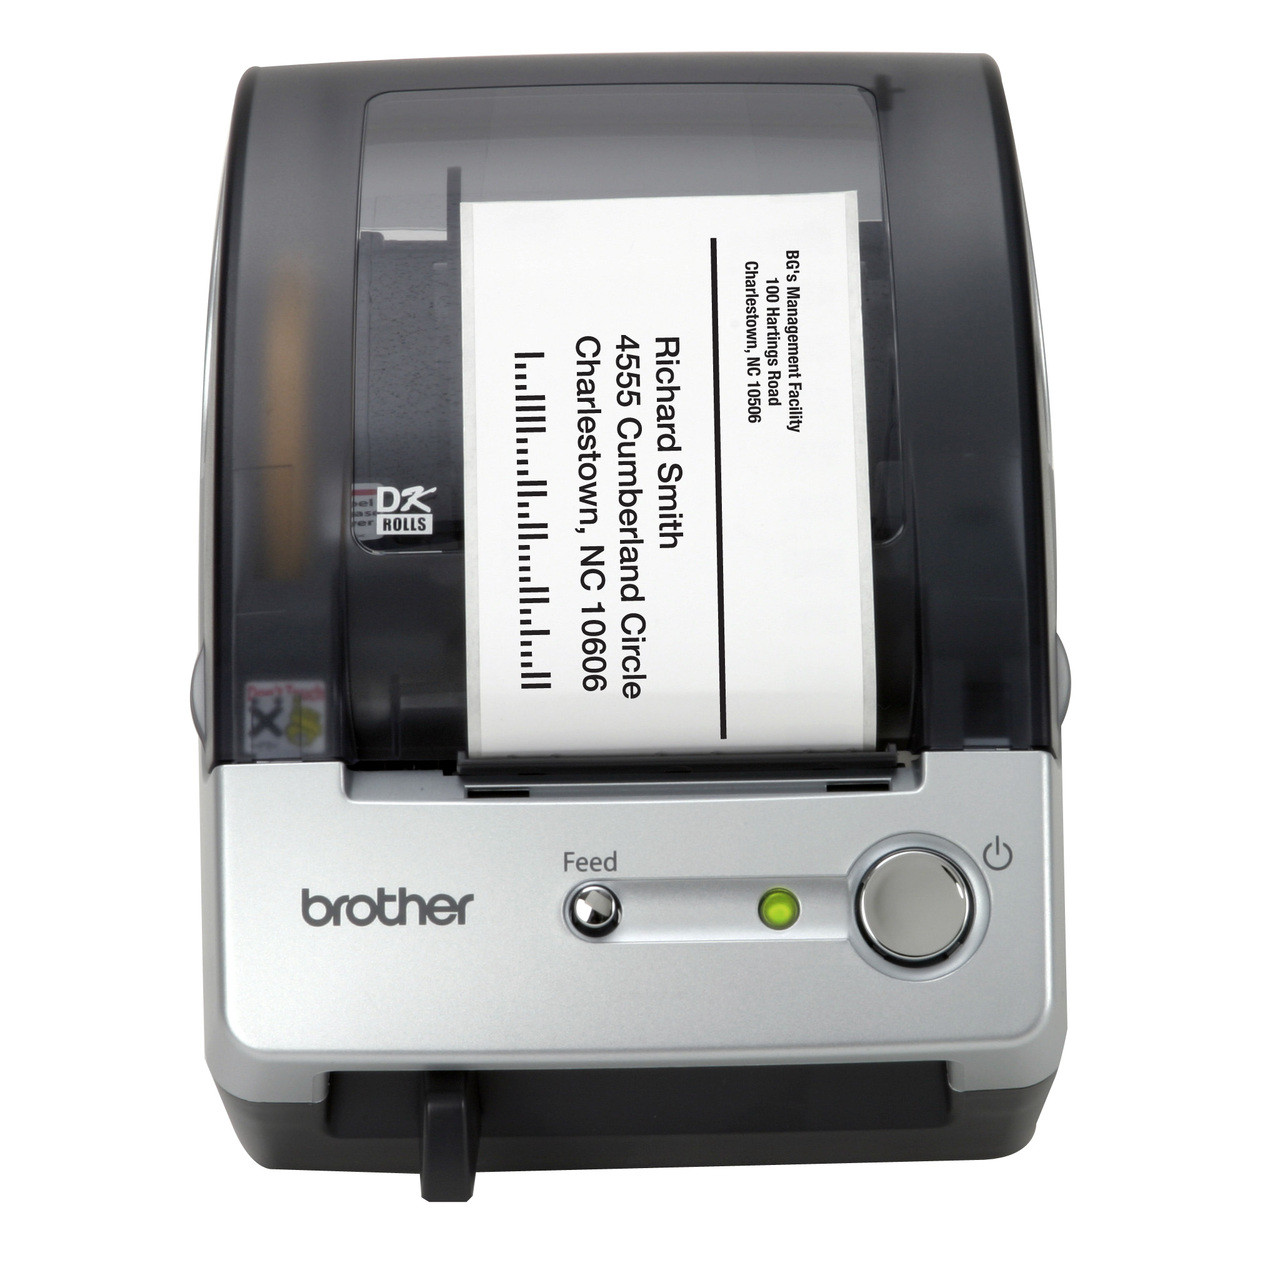 BROTHER QL 500 PRINTER DRIVERS FOR PC